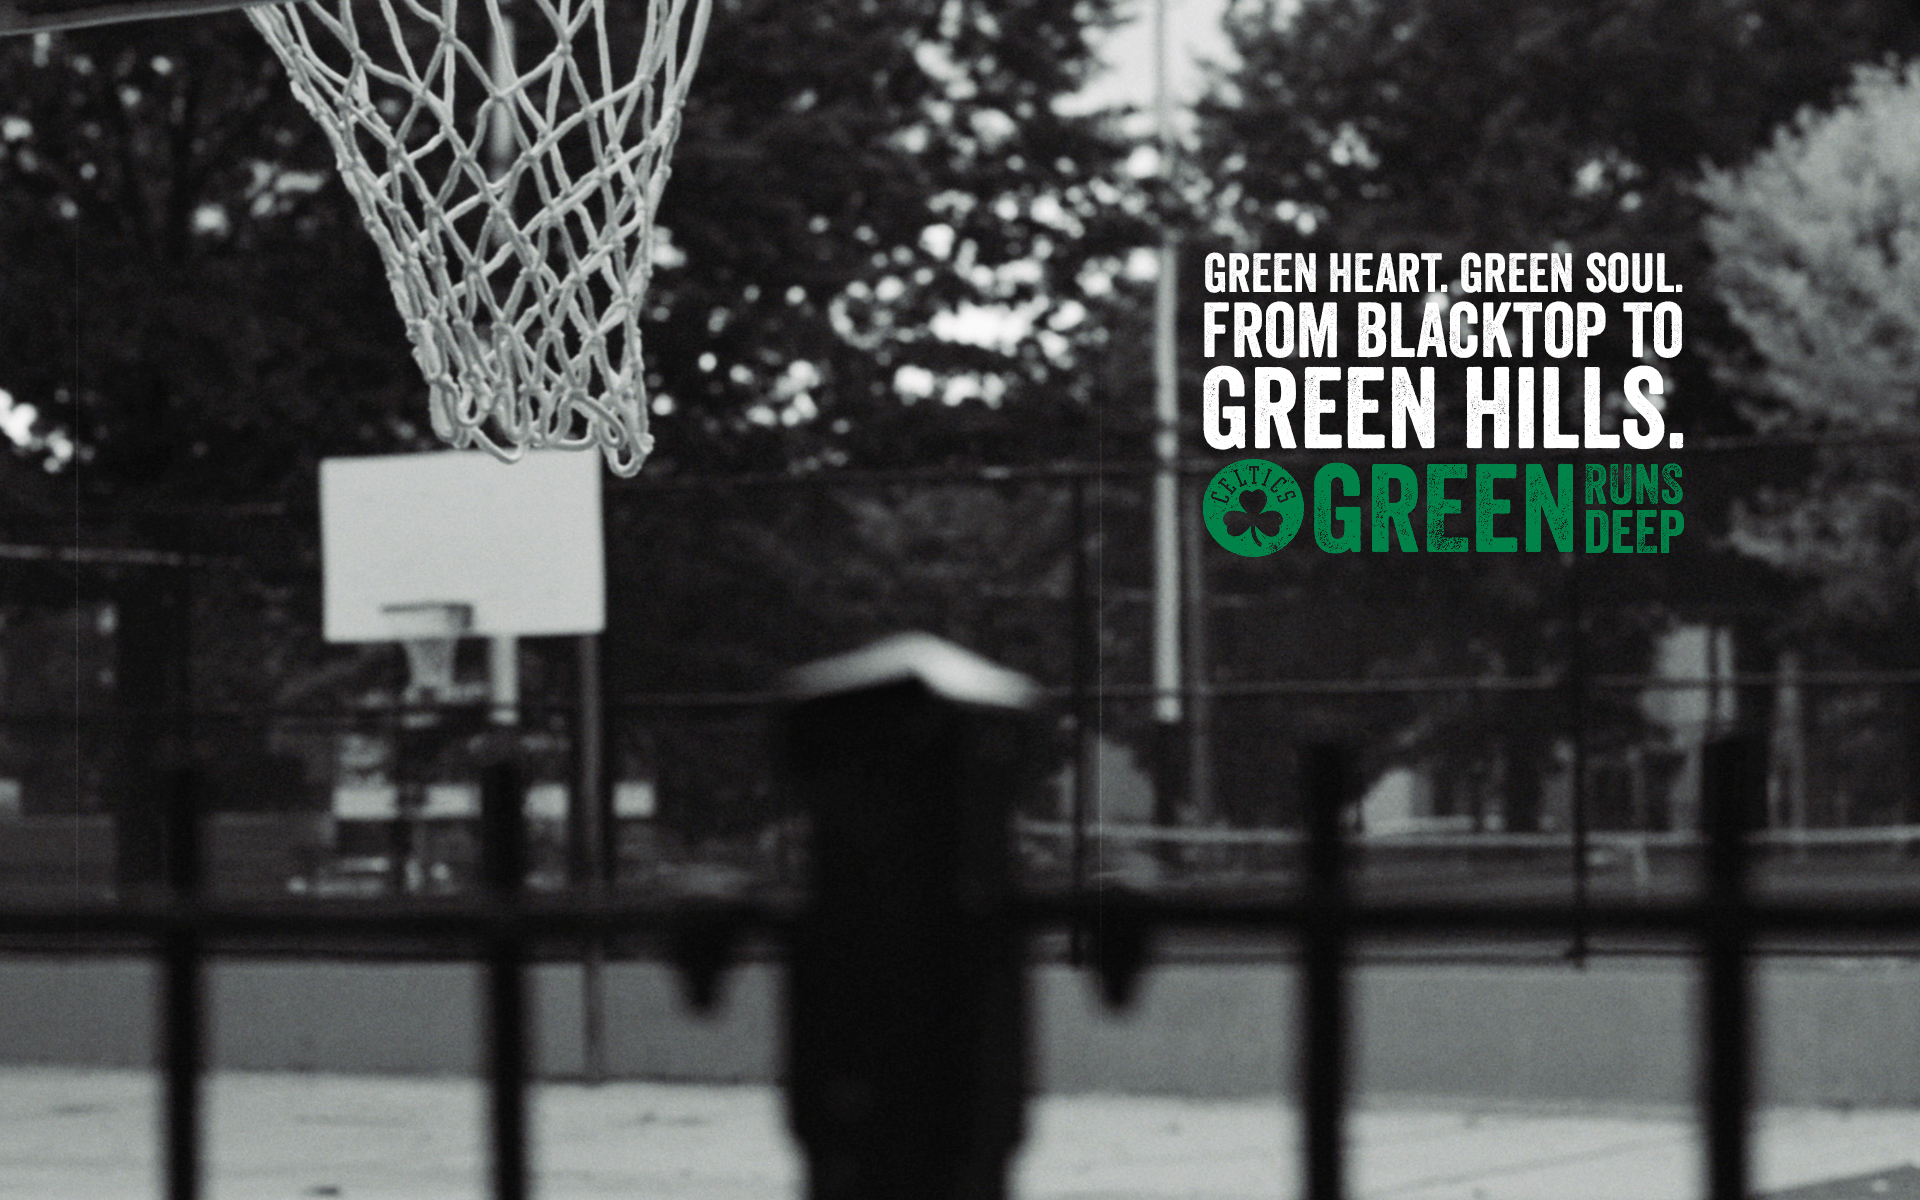 FROM BLACKTOP TO GREEN HILLS